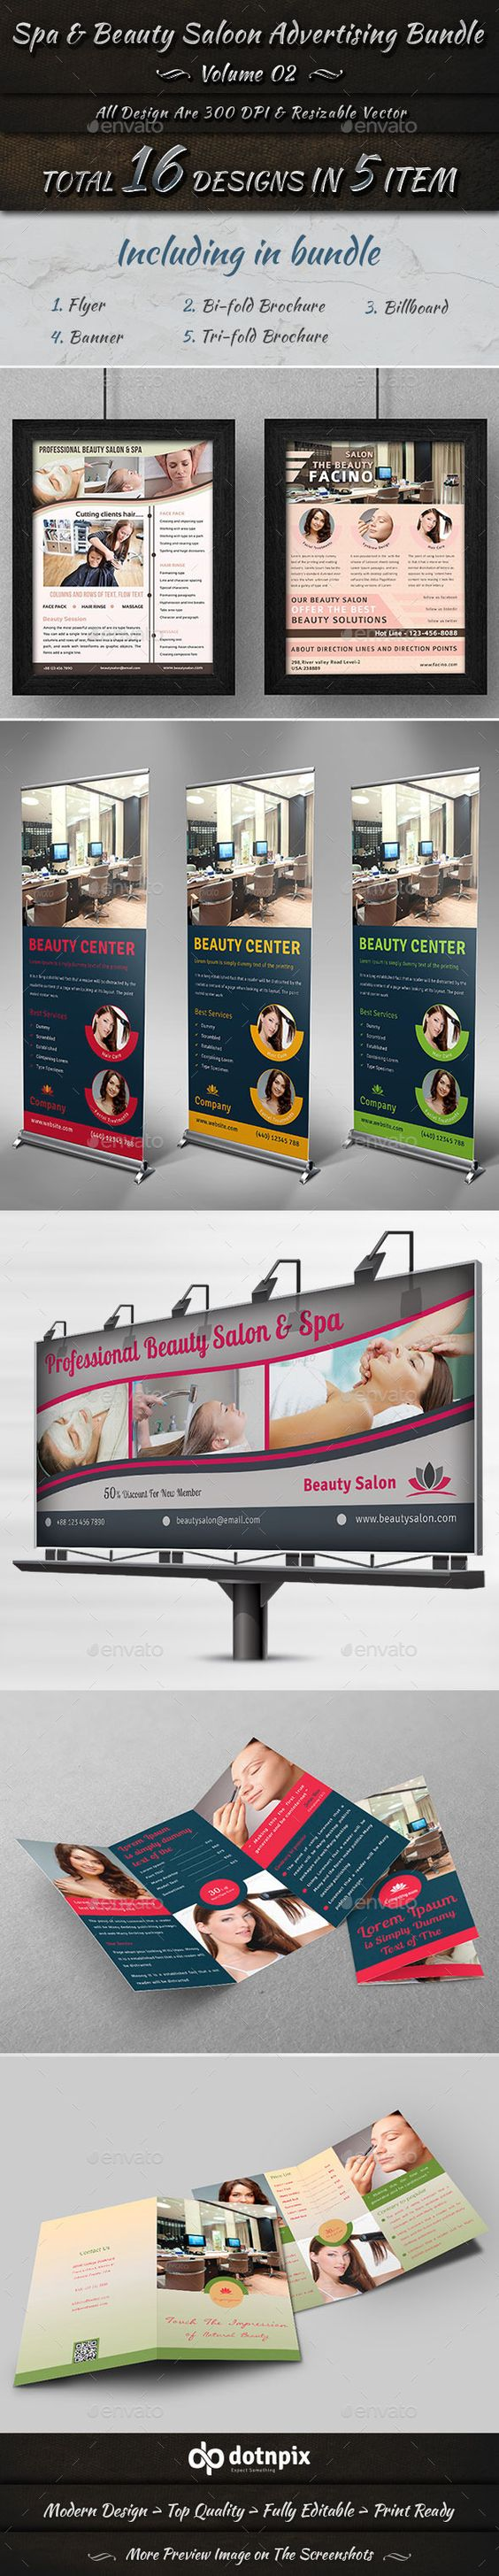 Spa & Beauty Salon Advertising Bundle | Volume 2